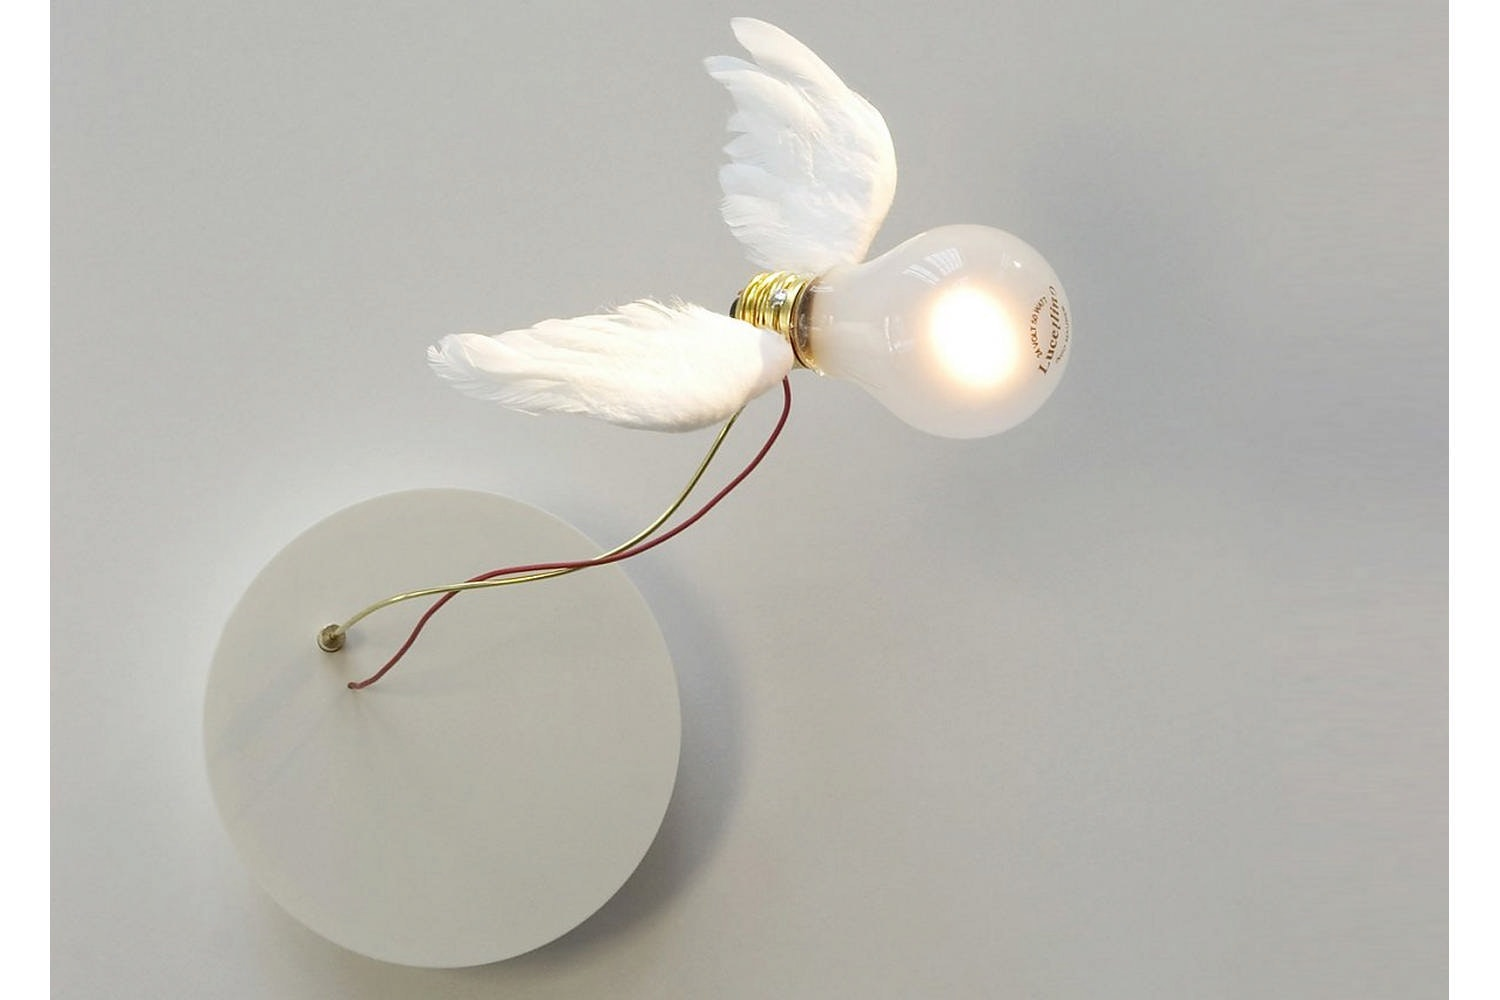 Lucellino NT Wall Lamp by Ingo Maurer for Ingo Maurer